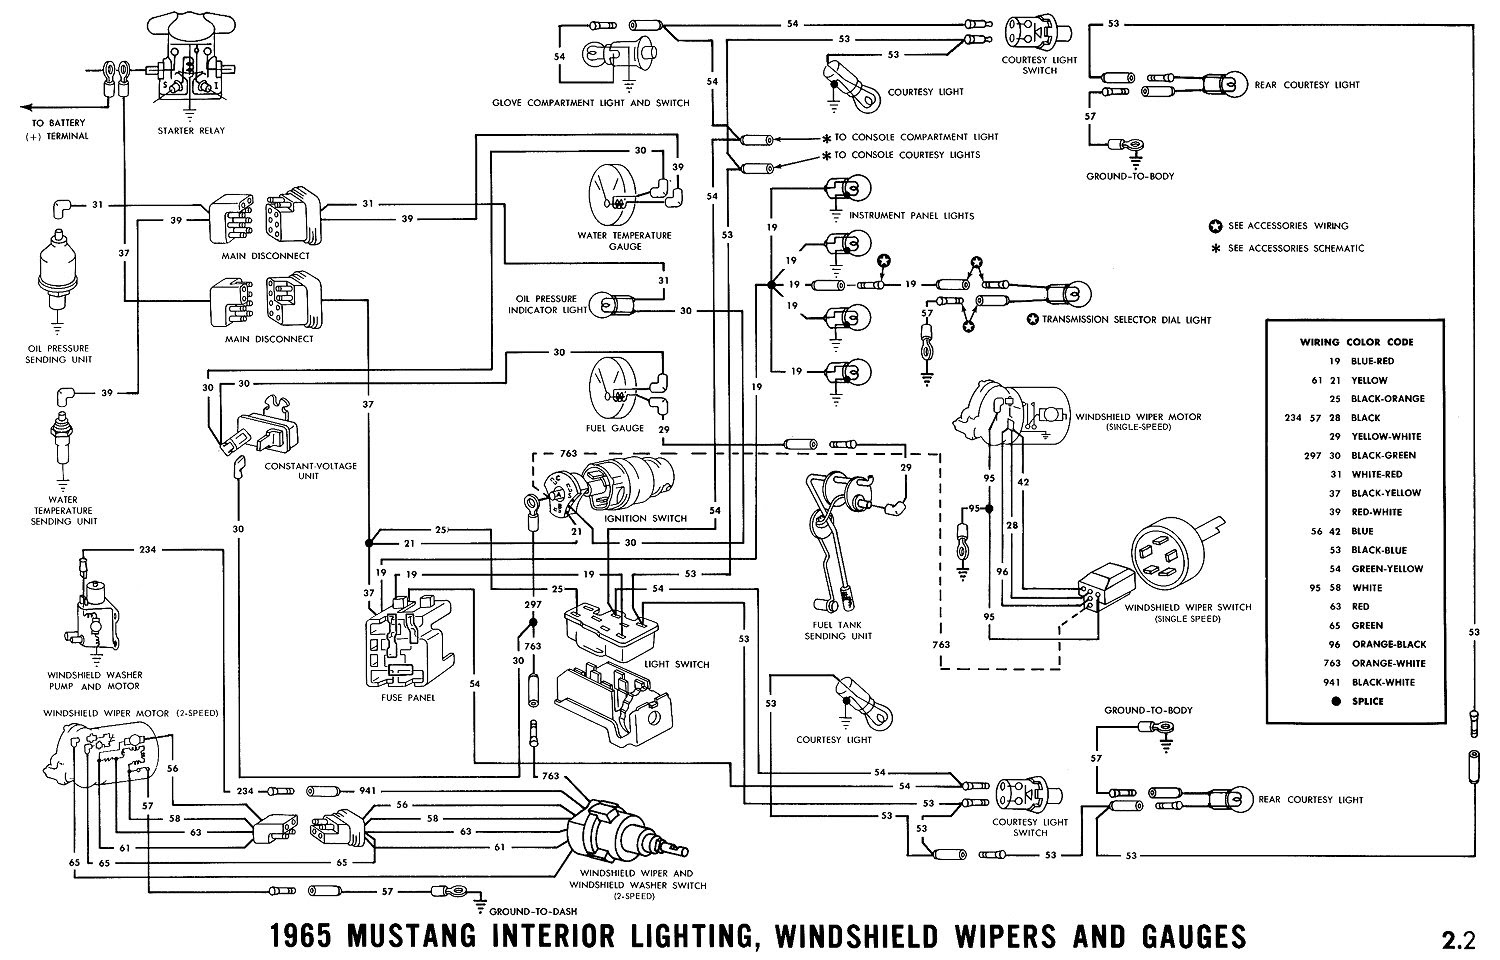 1967 Mustang Color Wiring Diagram 91 S10 Engine Wiring Diagram Bege Wiring Diagram